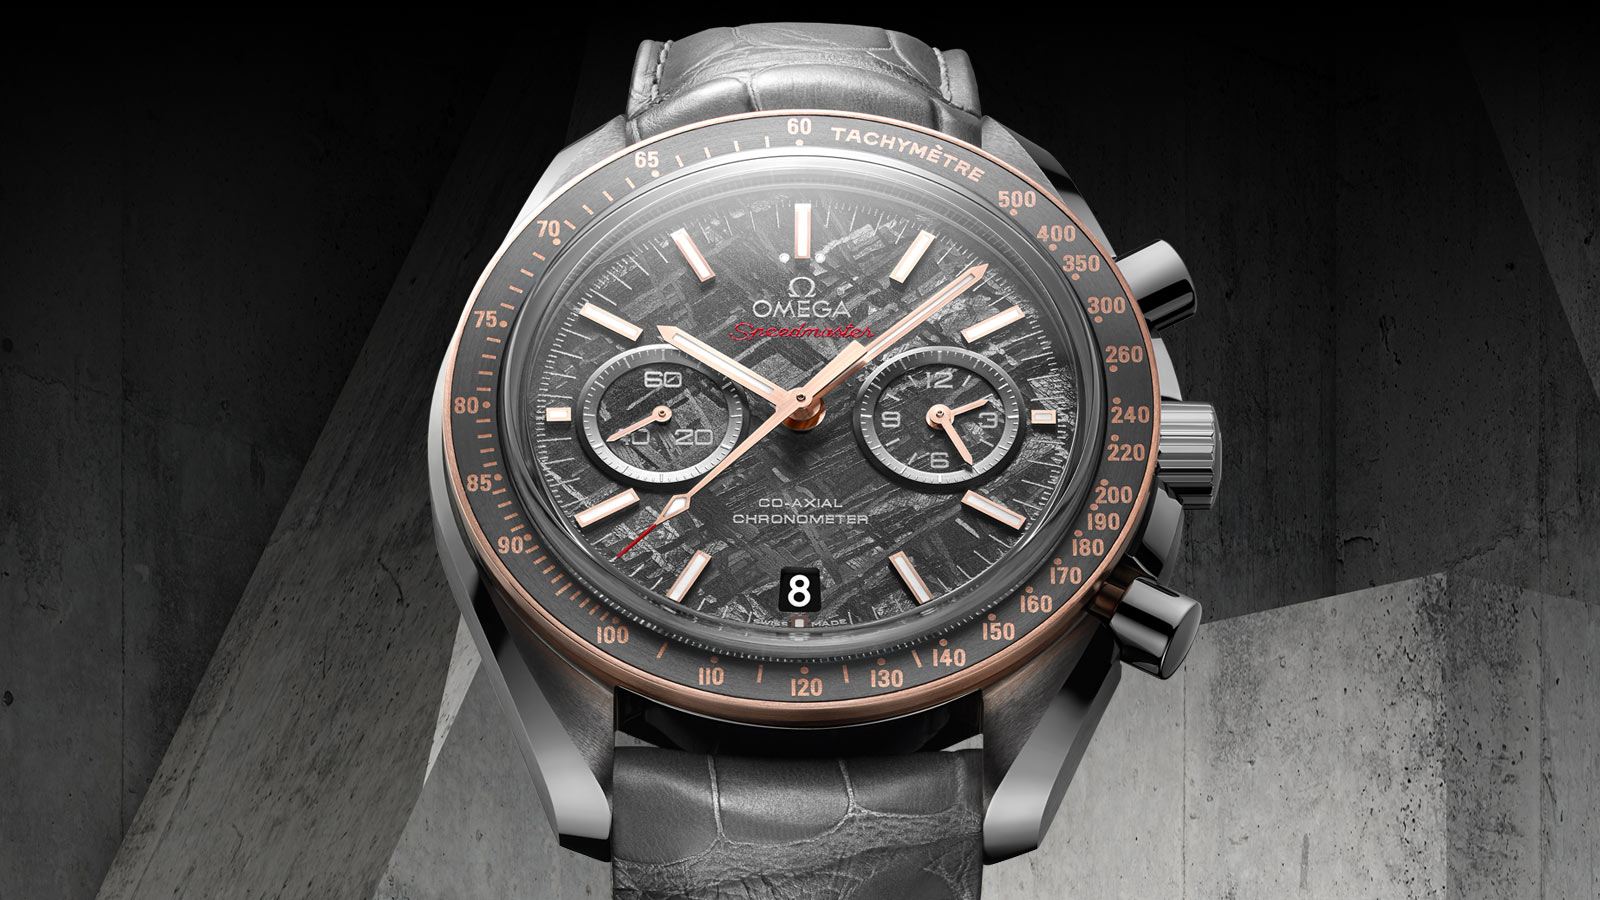 Omega replica watches Speedmaster watch